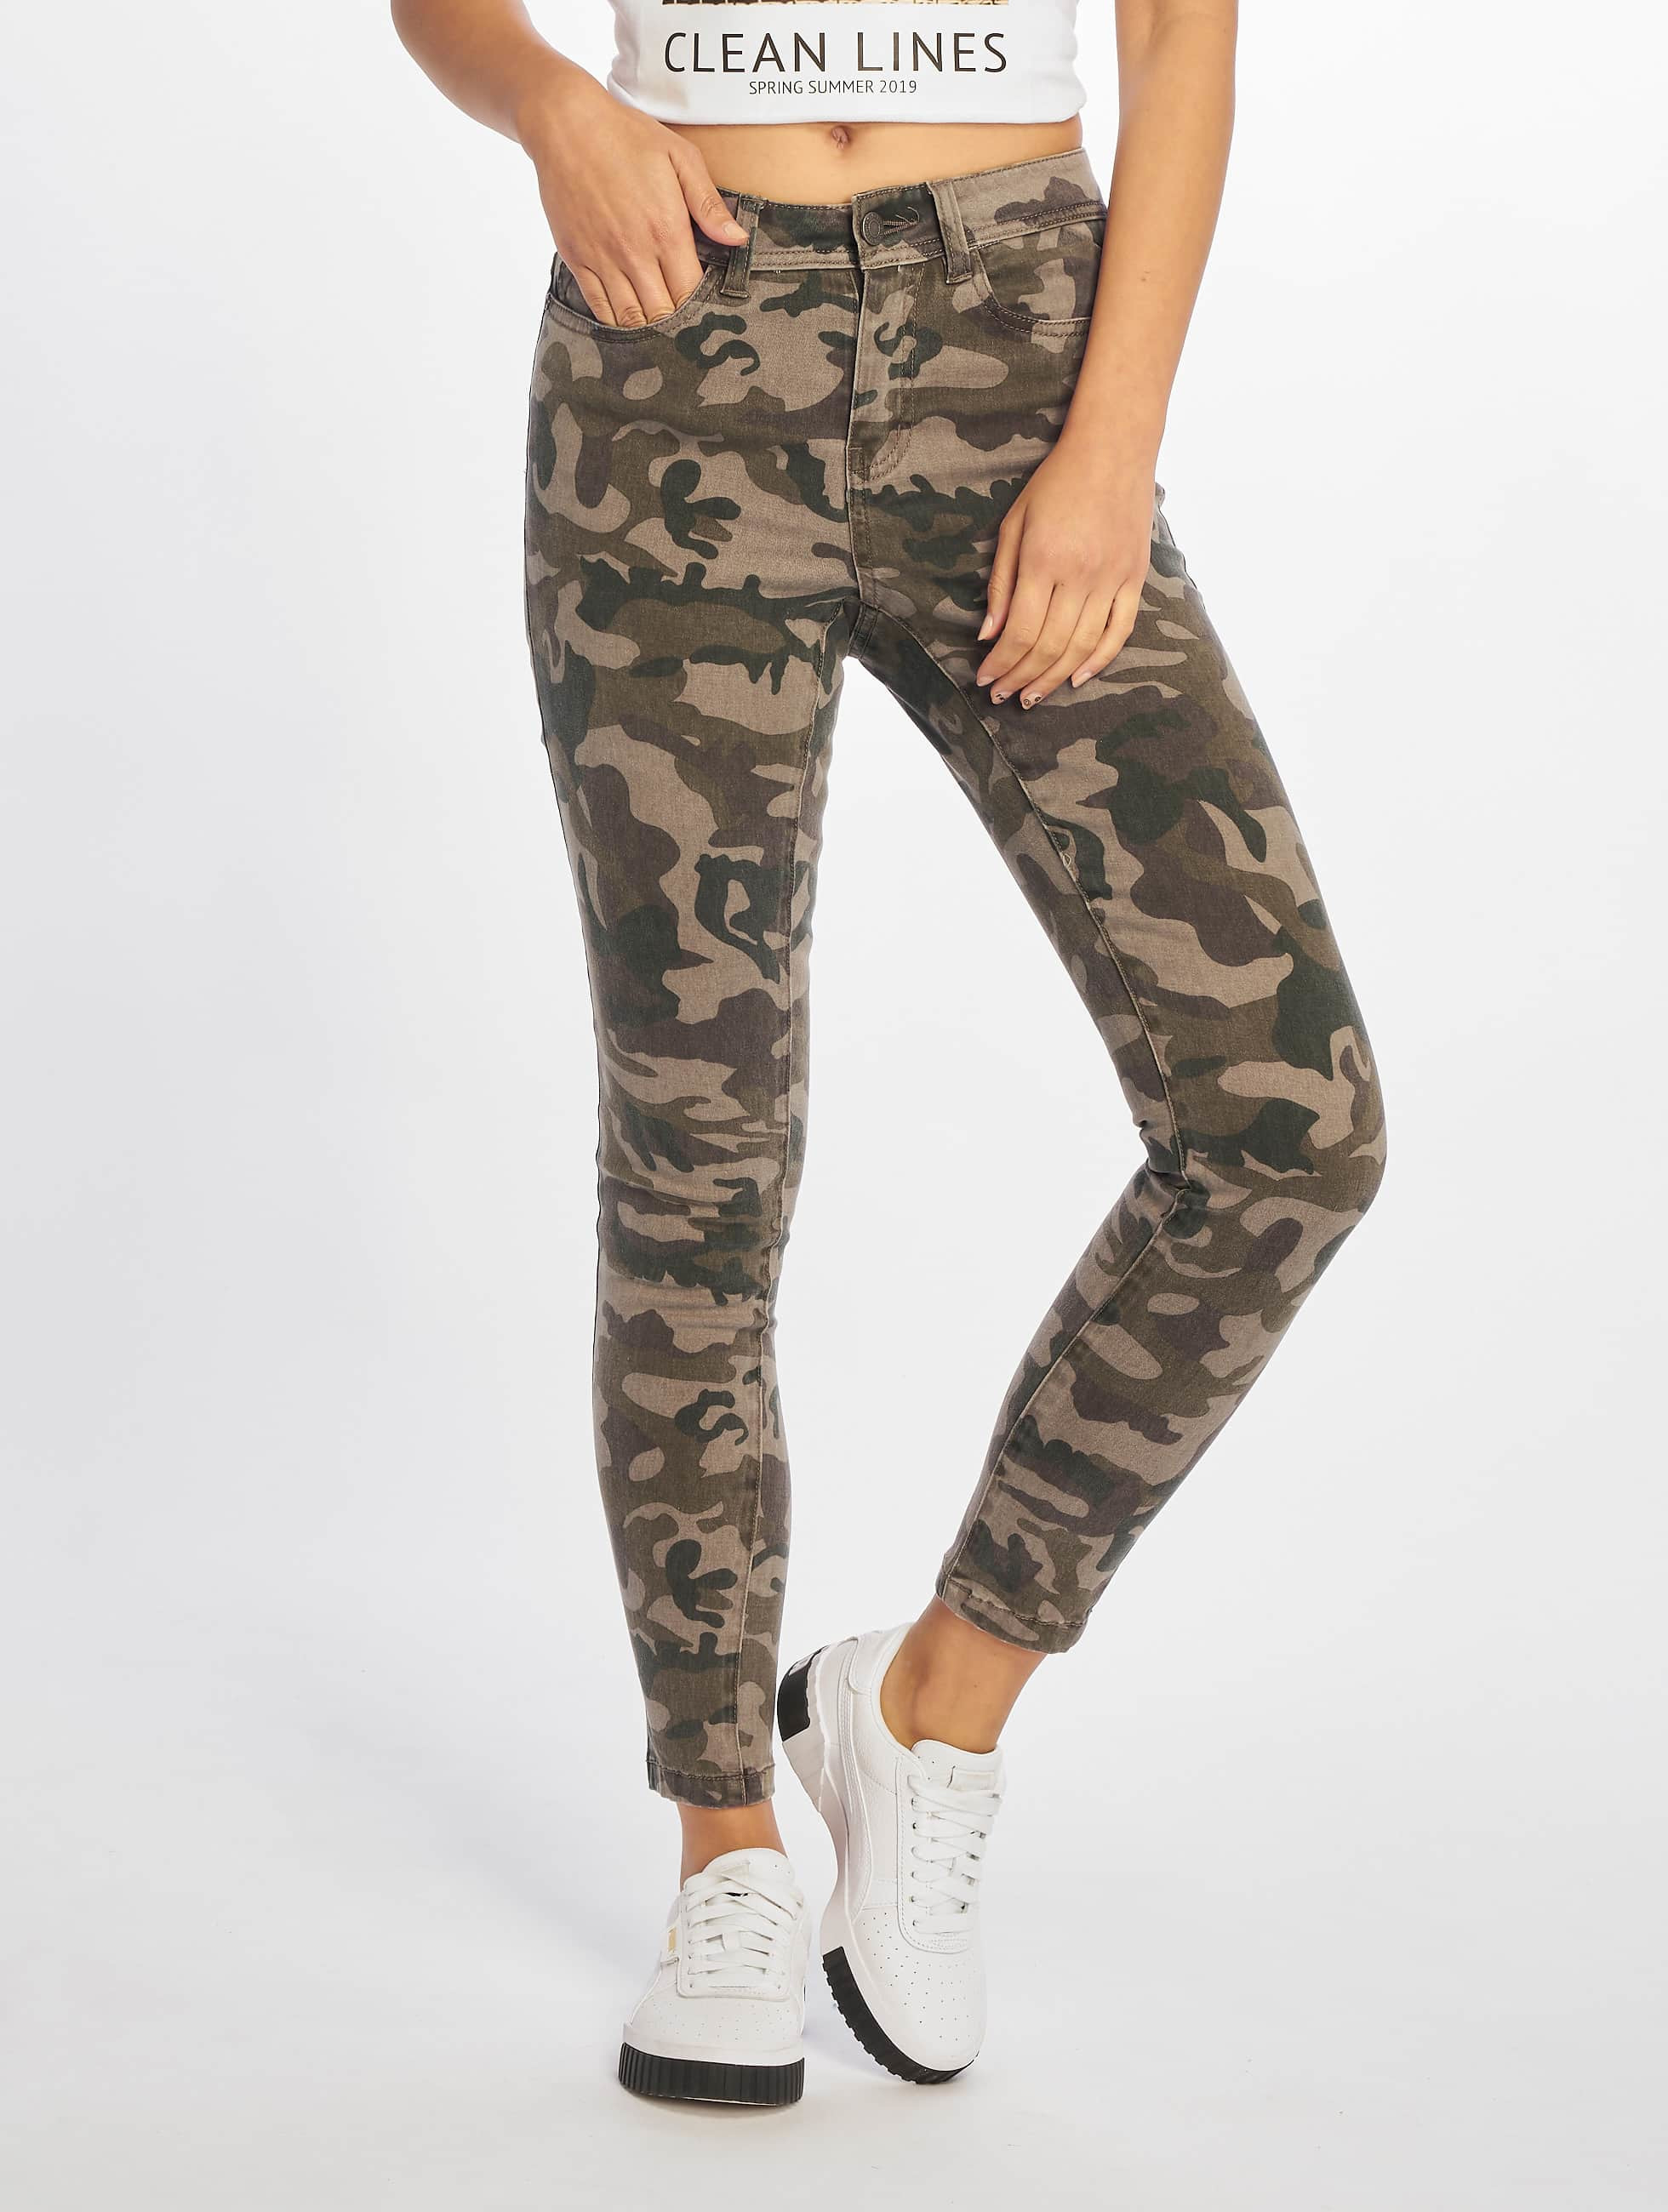 CAMOUFLAGE RIPPED JEANS – Musthave It All